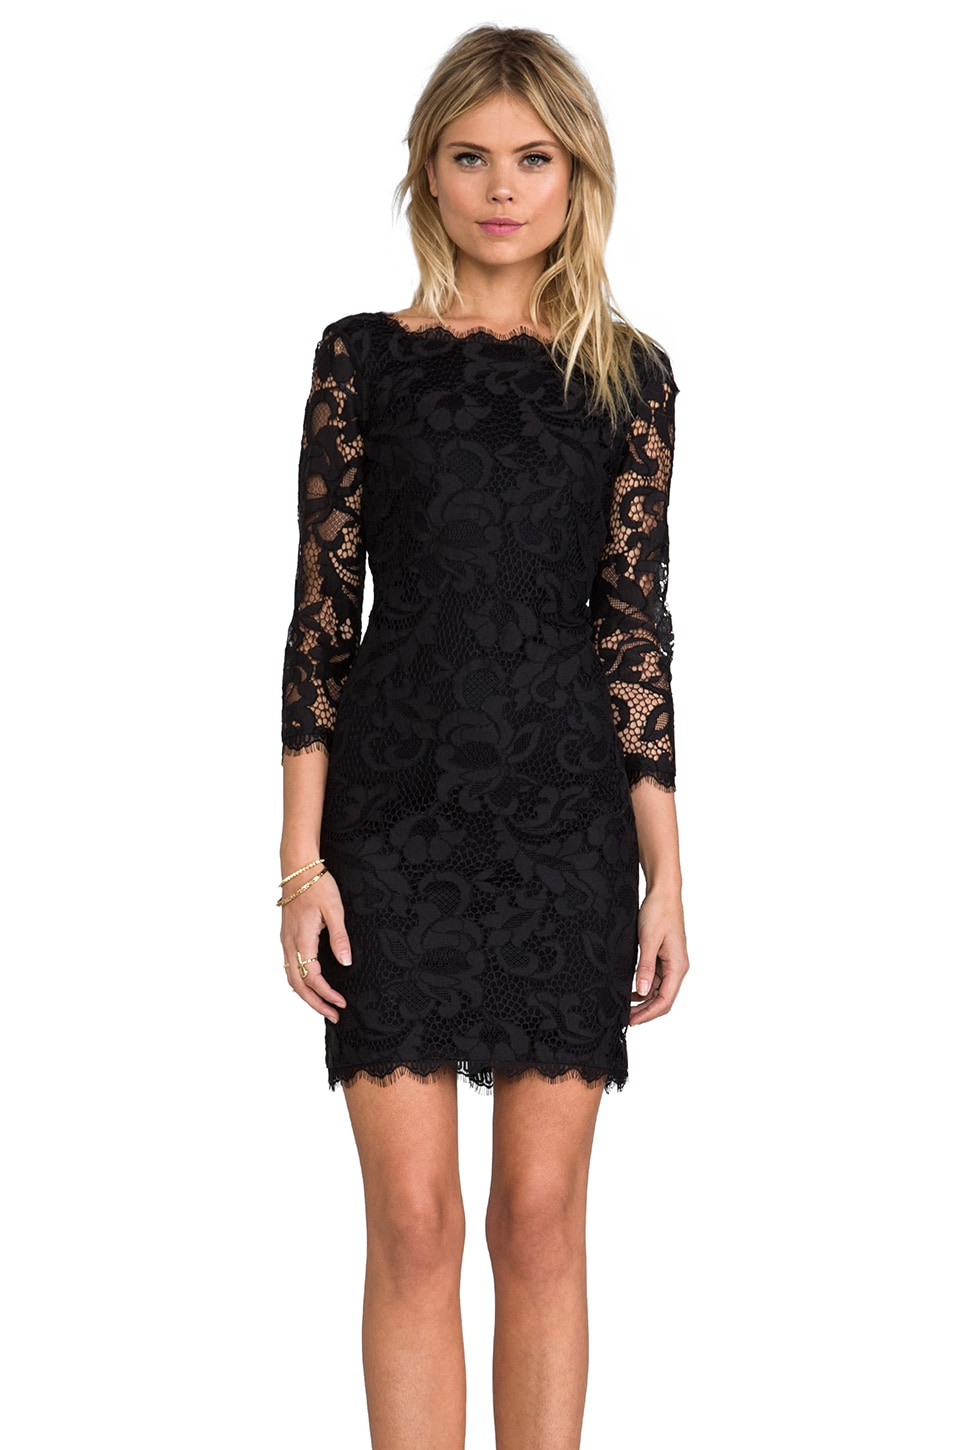 Diane von Furstenberg Zarita Scoop Dress in Black